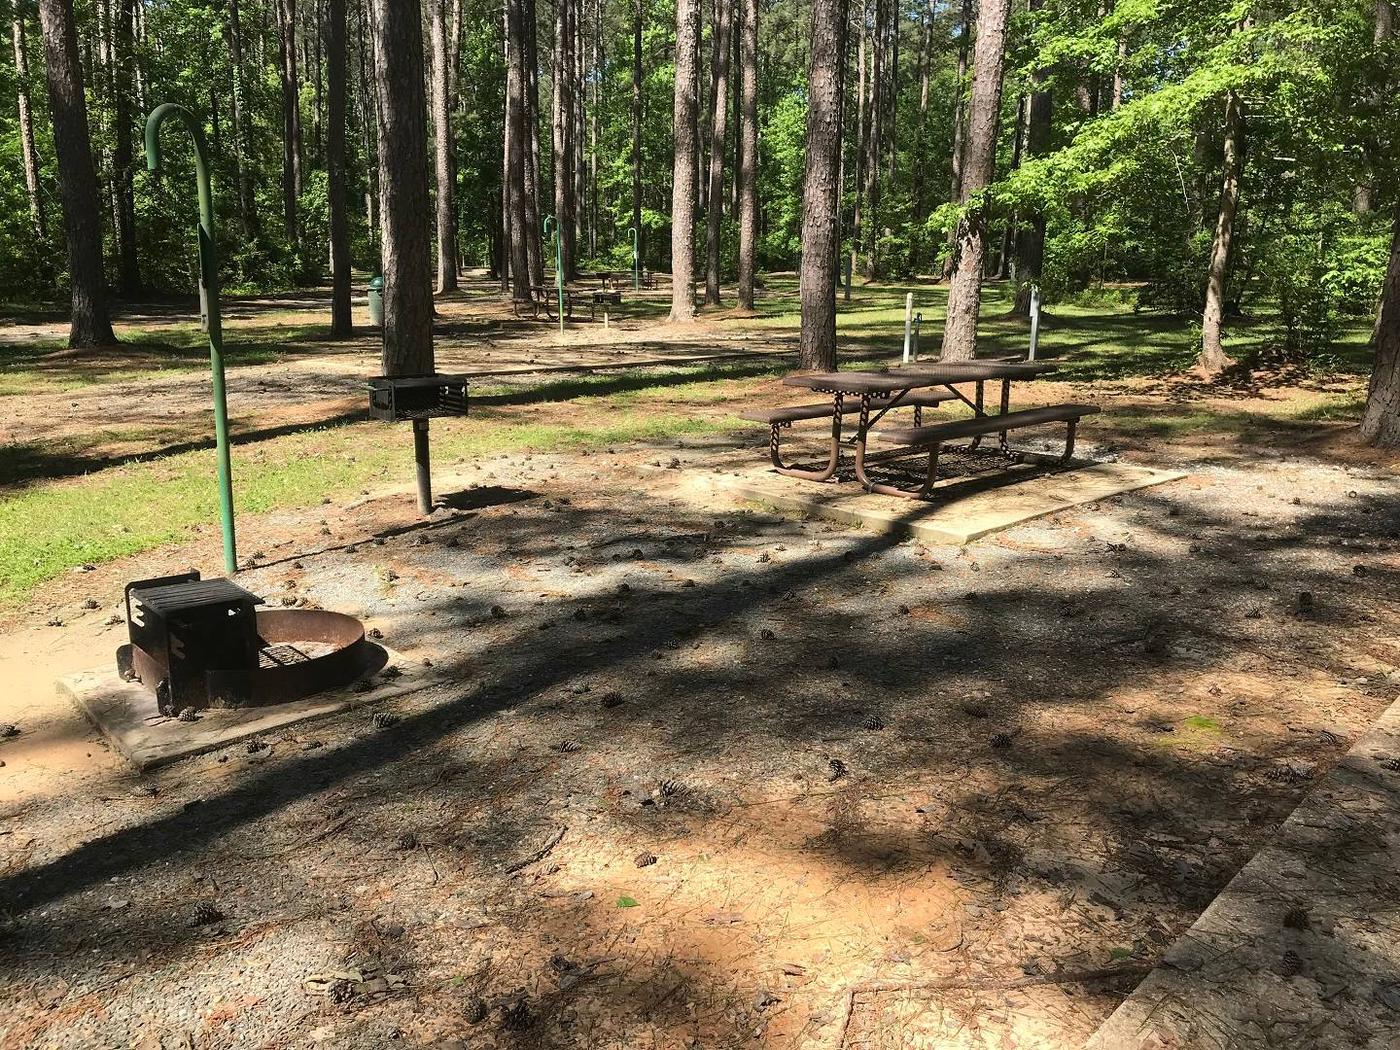 Shaded Class A Campsite #19.Shaded Class A Campsite #19. RV pad, water, and 20/30/50 AMP electric hook-ups as well as basic campsite amenities including a picnic table, lantern post, fire ring, trash can and grill.